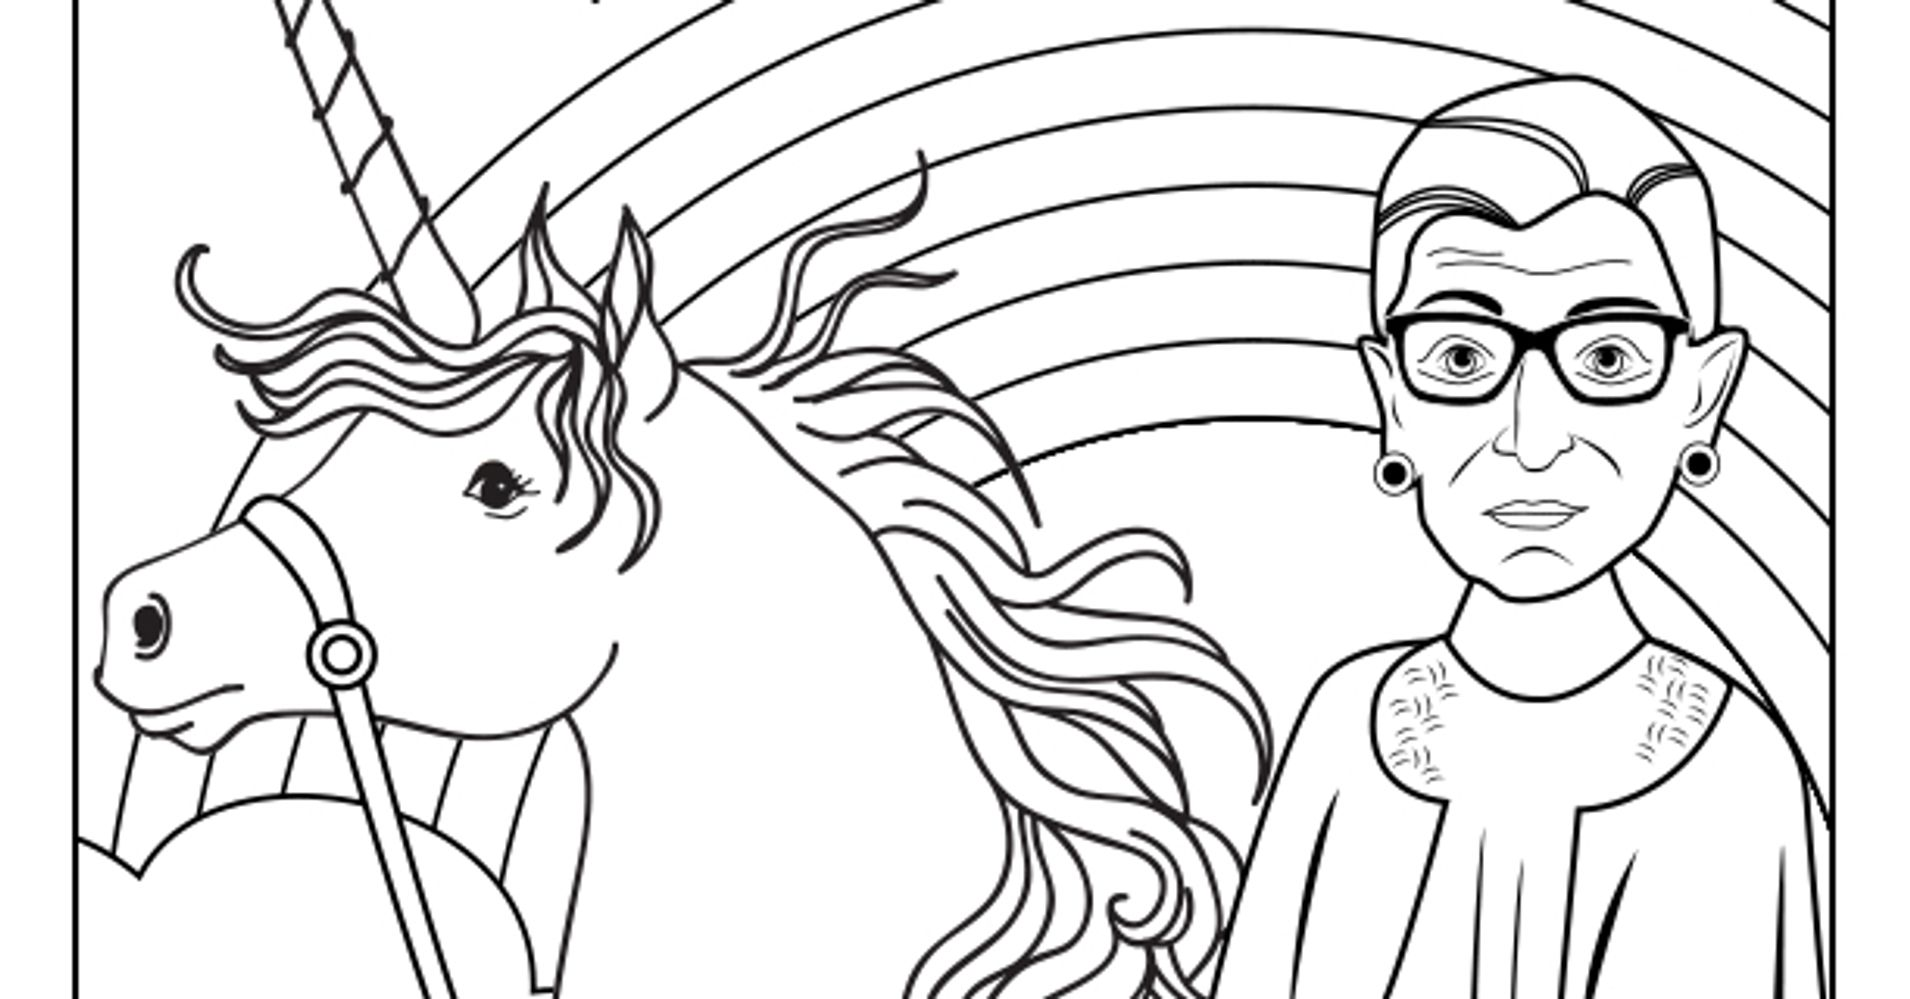 coloring pages 365 marital sex - photo#10